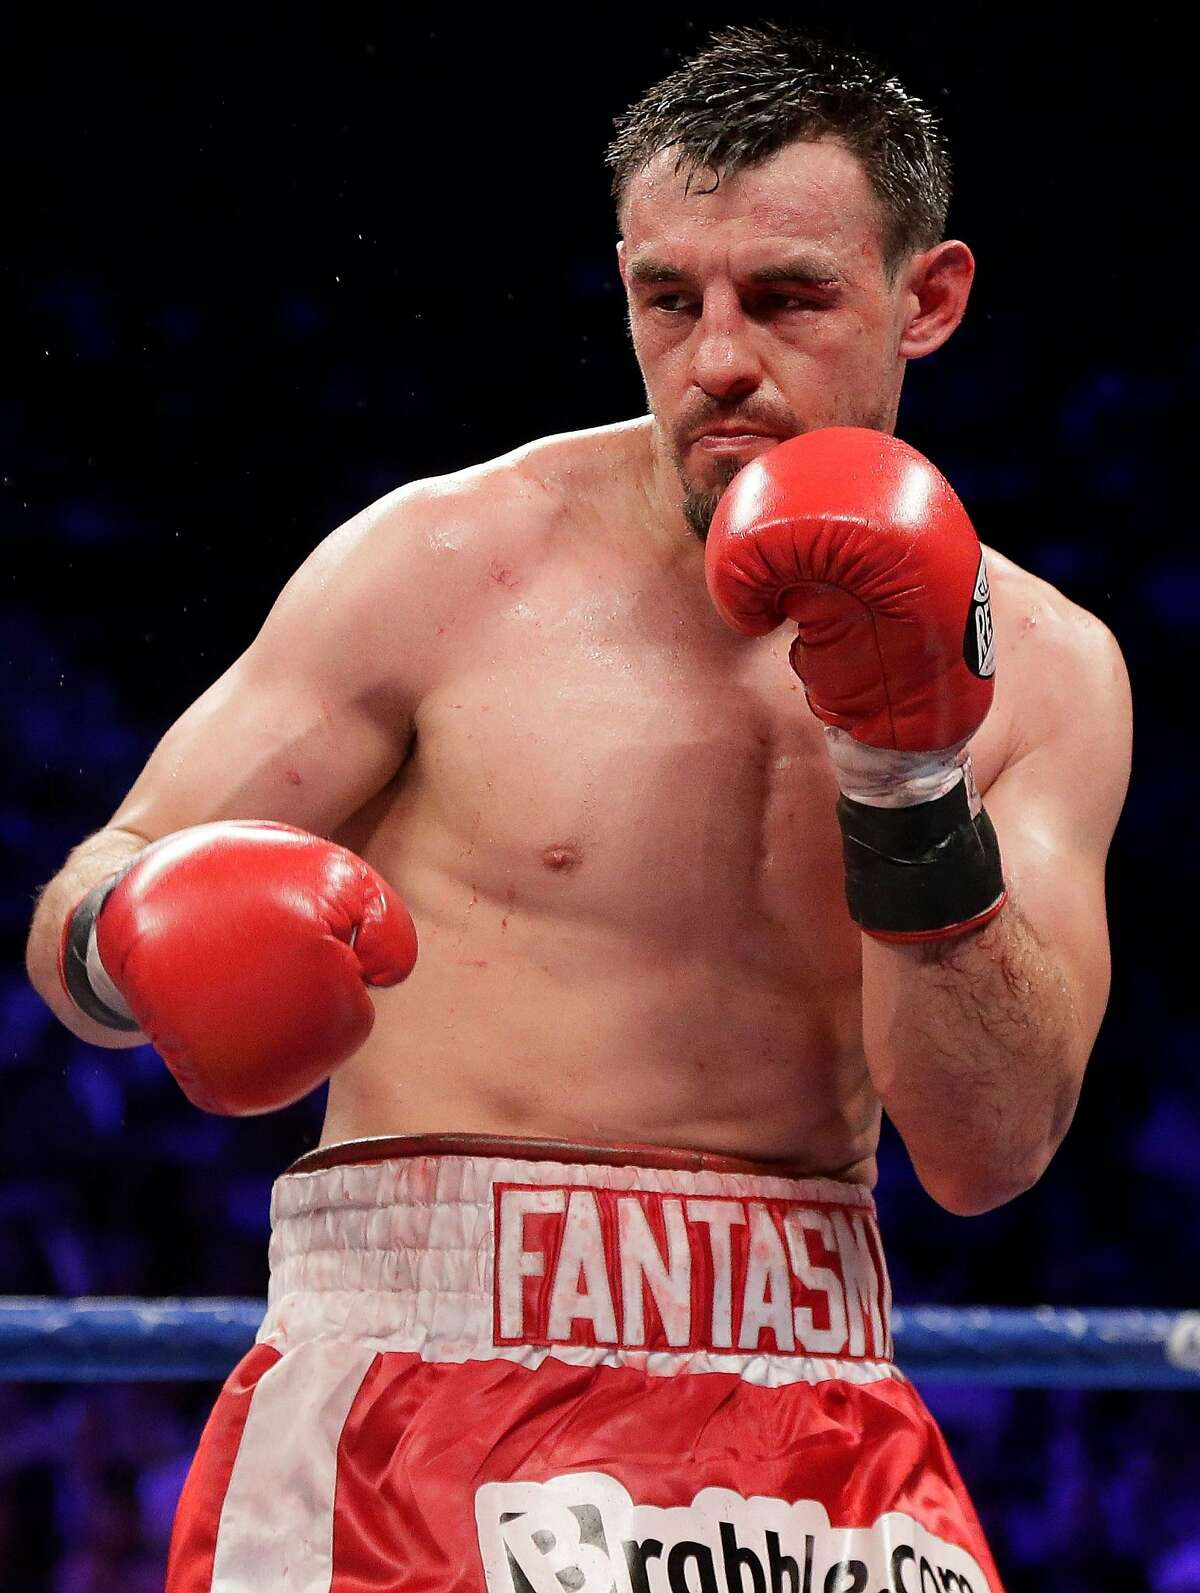 This Saturday, May 4, 2013 photo shows Robert Guerrero during his WBC welterweight title fight against Floyd Mayweather Jr. in Las Vegas. The boxer, who had been arrested at a New York City airport on gun charges, has pleaded guilty to disorderly conduct on Tuesday, May 14, 2013. He was ordered to pay a $250 fine and complete 50 hours of community service. Guerrero lives in California and will be able to perform the community service in his home state. (AP Photo/Rick Bowmer)